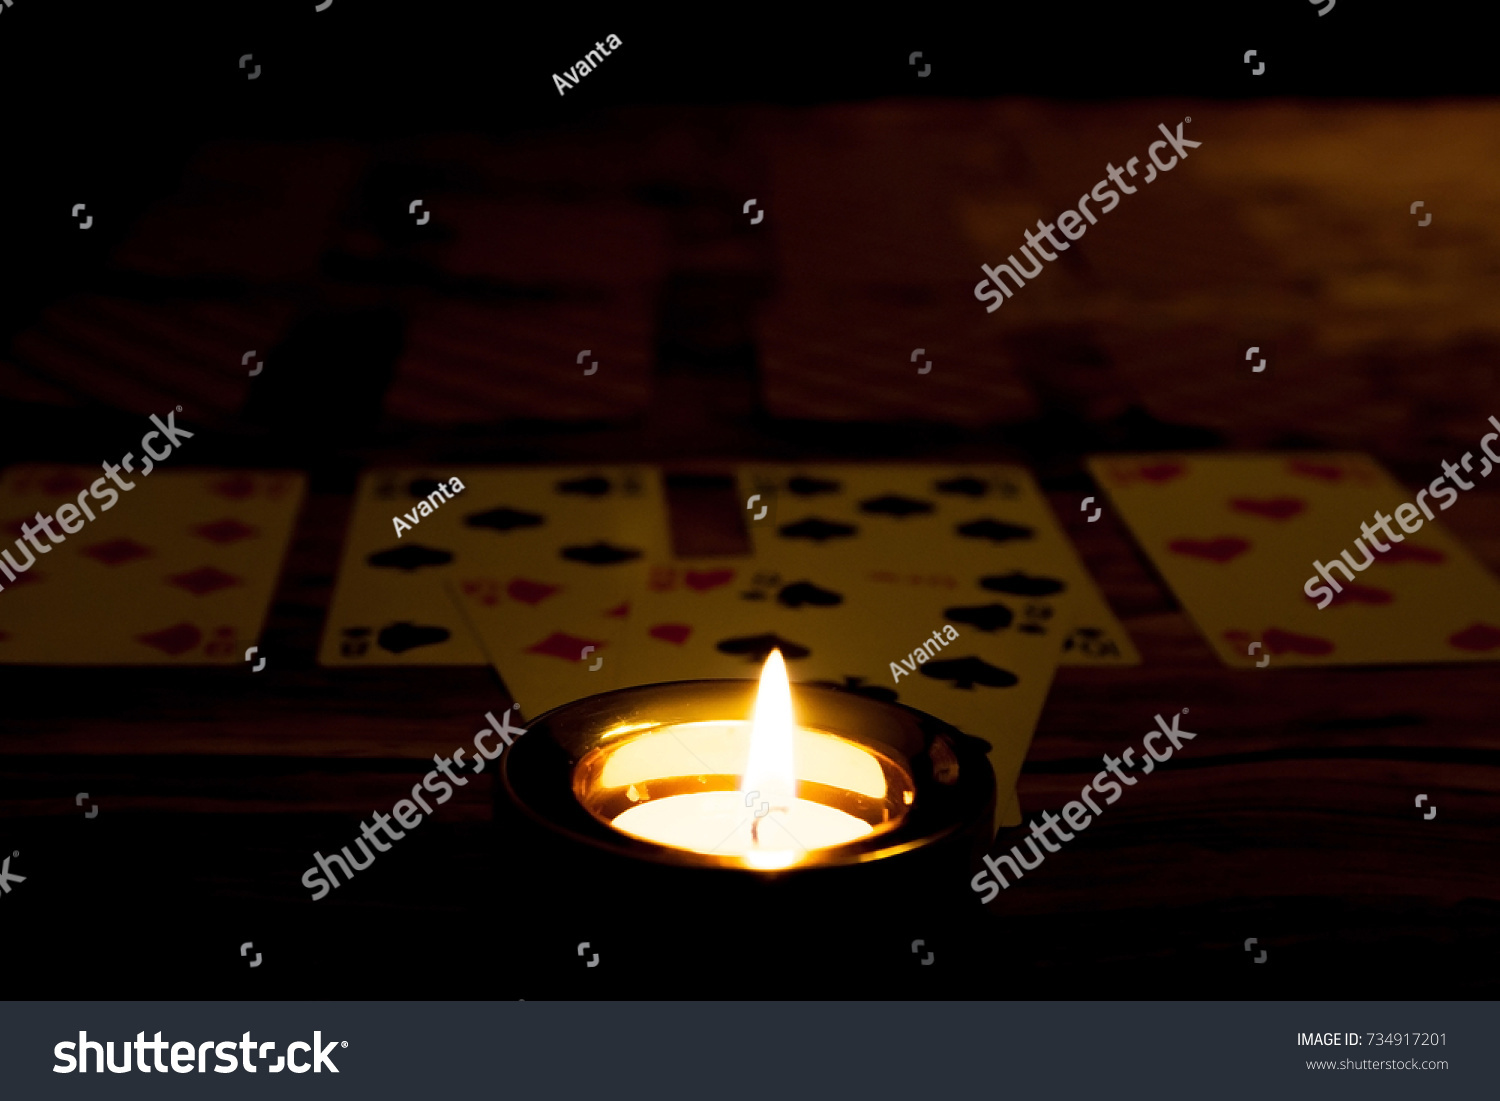 Tarot Reading Card Wallpaper Background Psychic Vintage Mystic Halloween fortune telling concept. Burning candle concept.